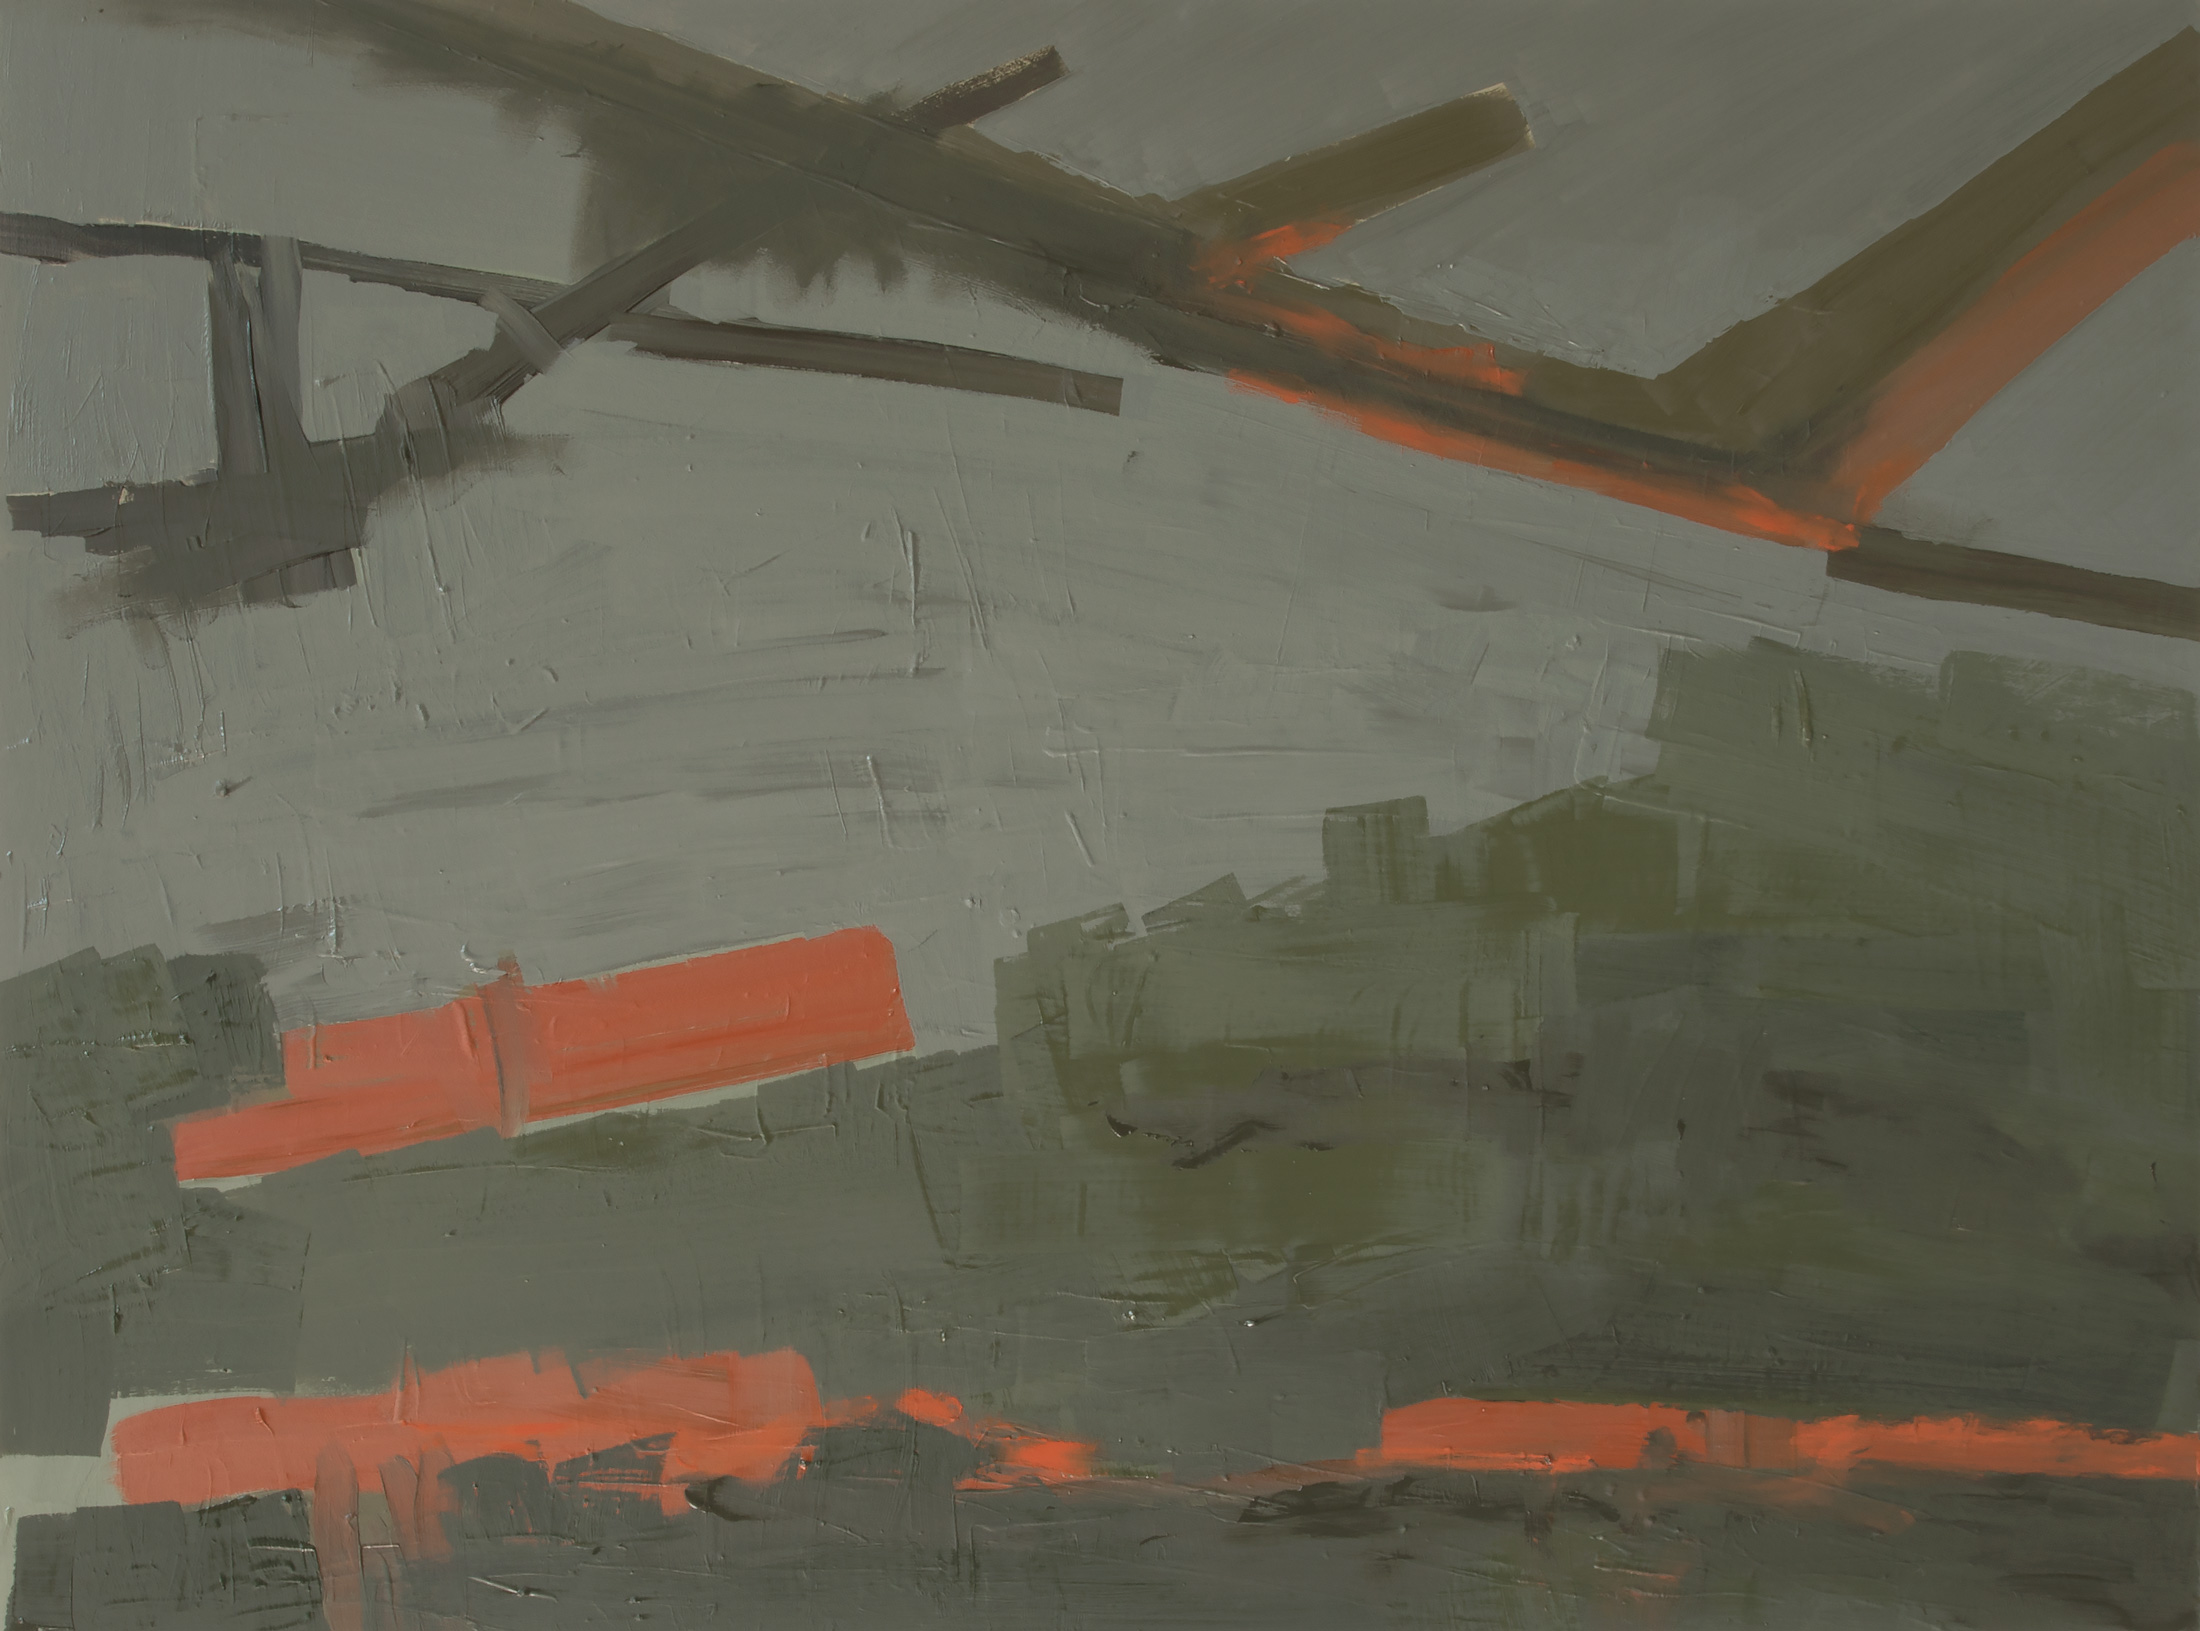 Airfield AF-17-01 , Oil on panel, 2017, 18 x 24 inches (45.7 x 60.9 cm)